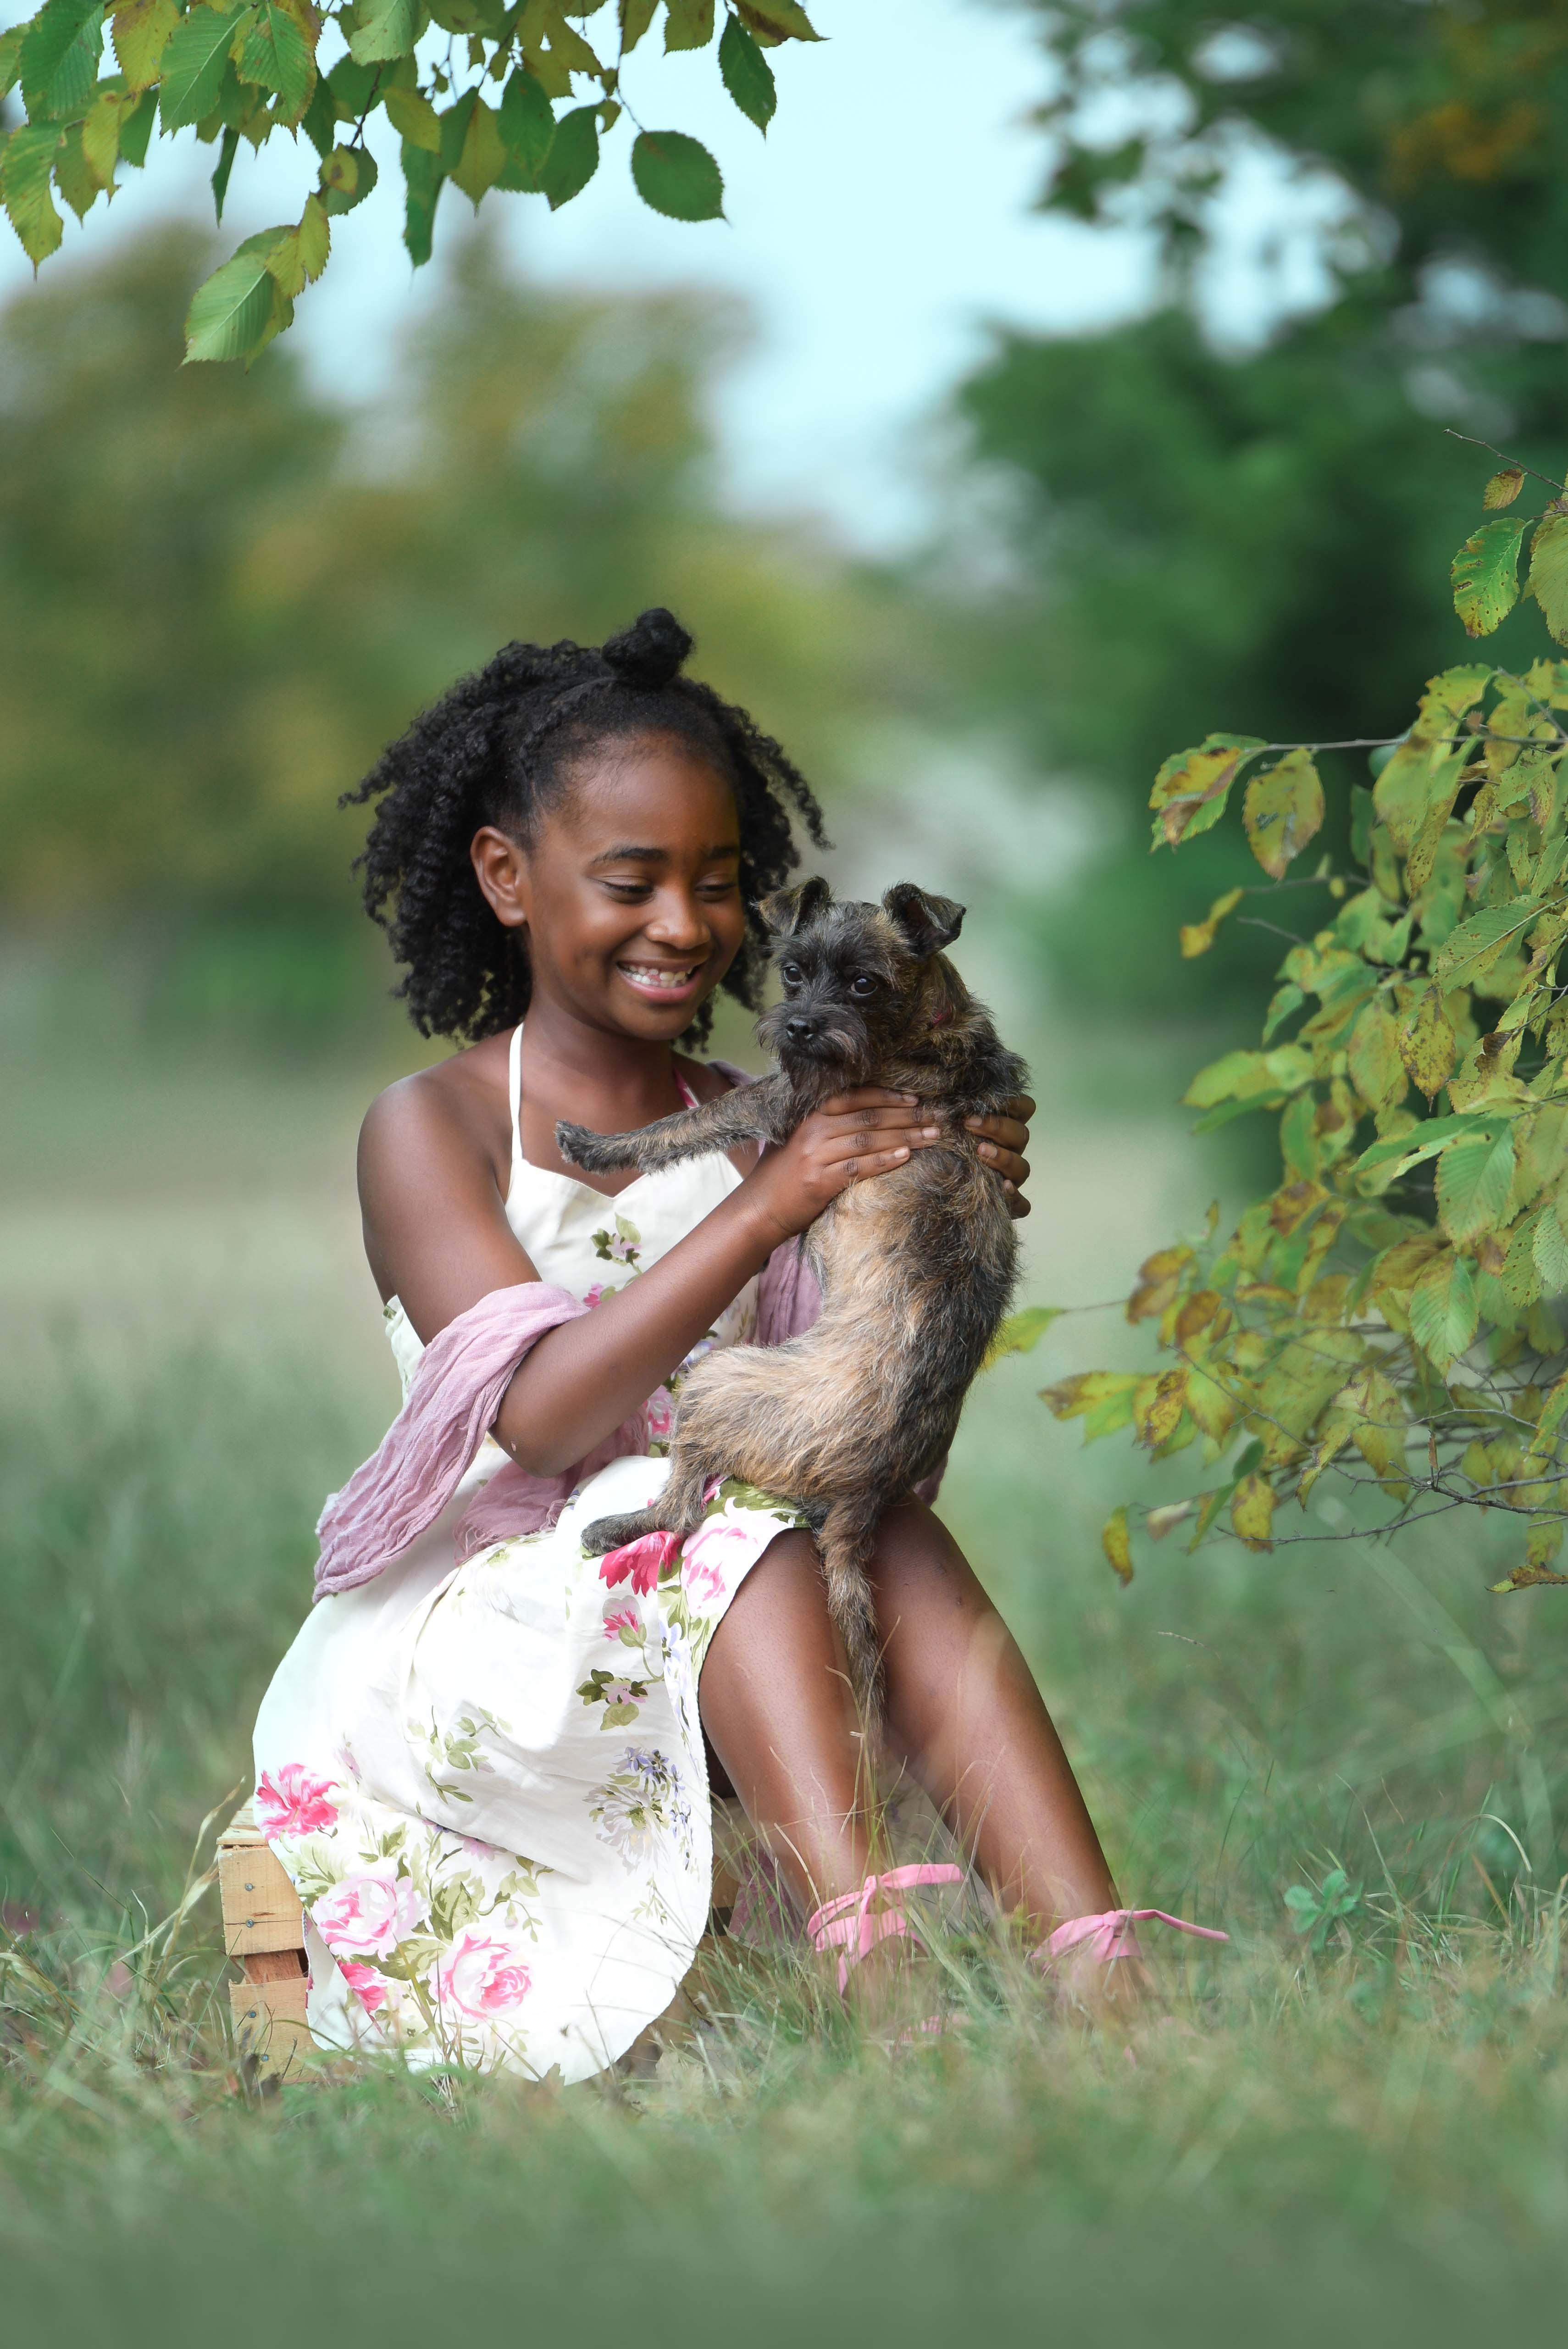 Kids and their Pets photos